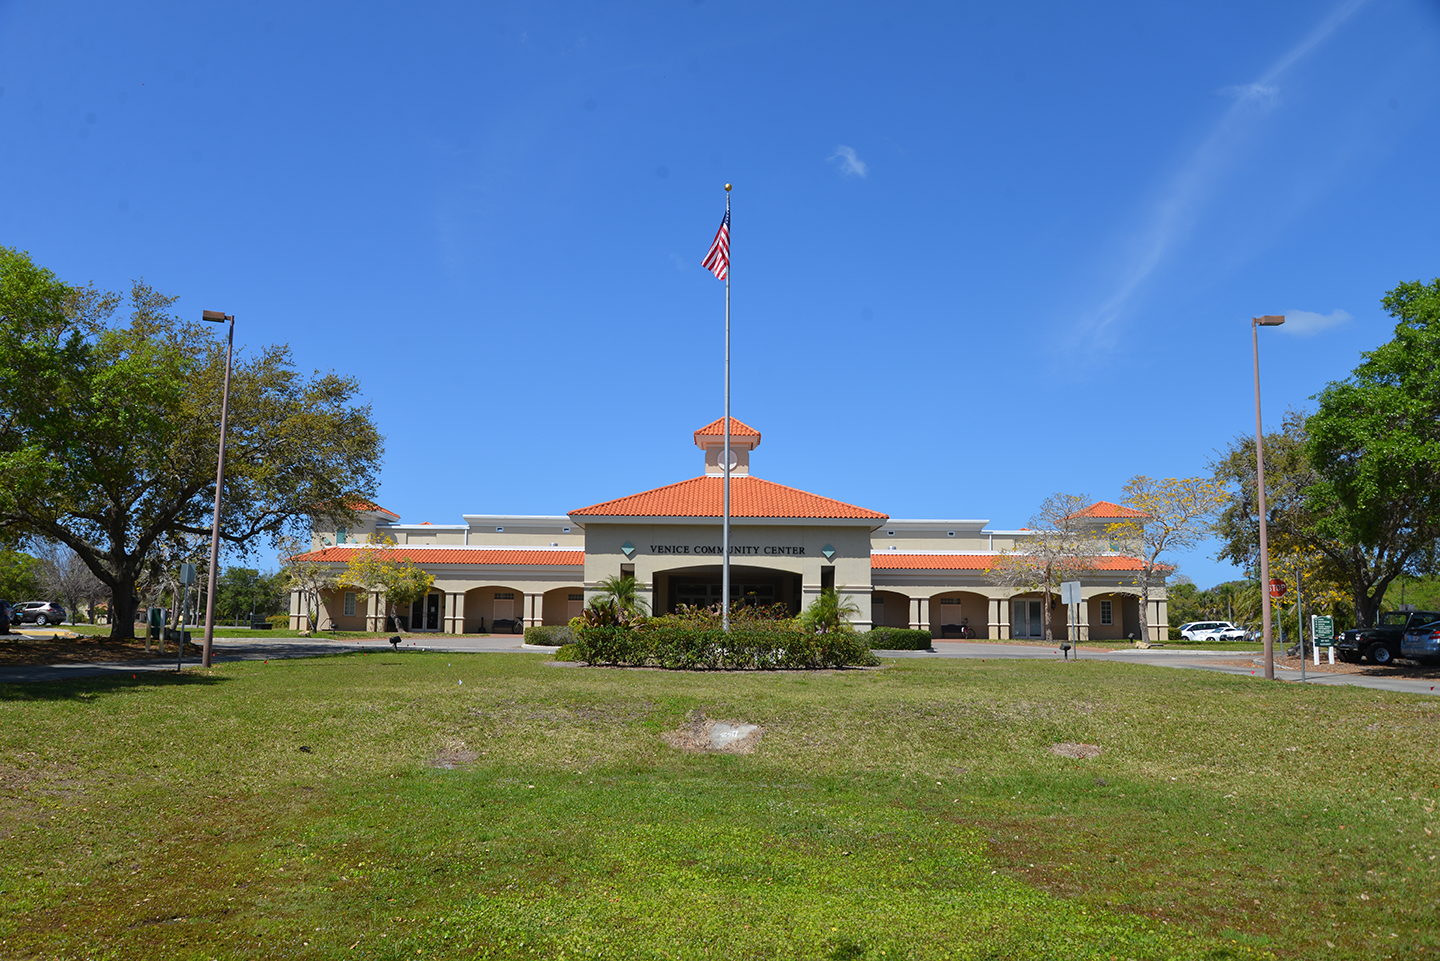 Front view of the Venice Community Center